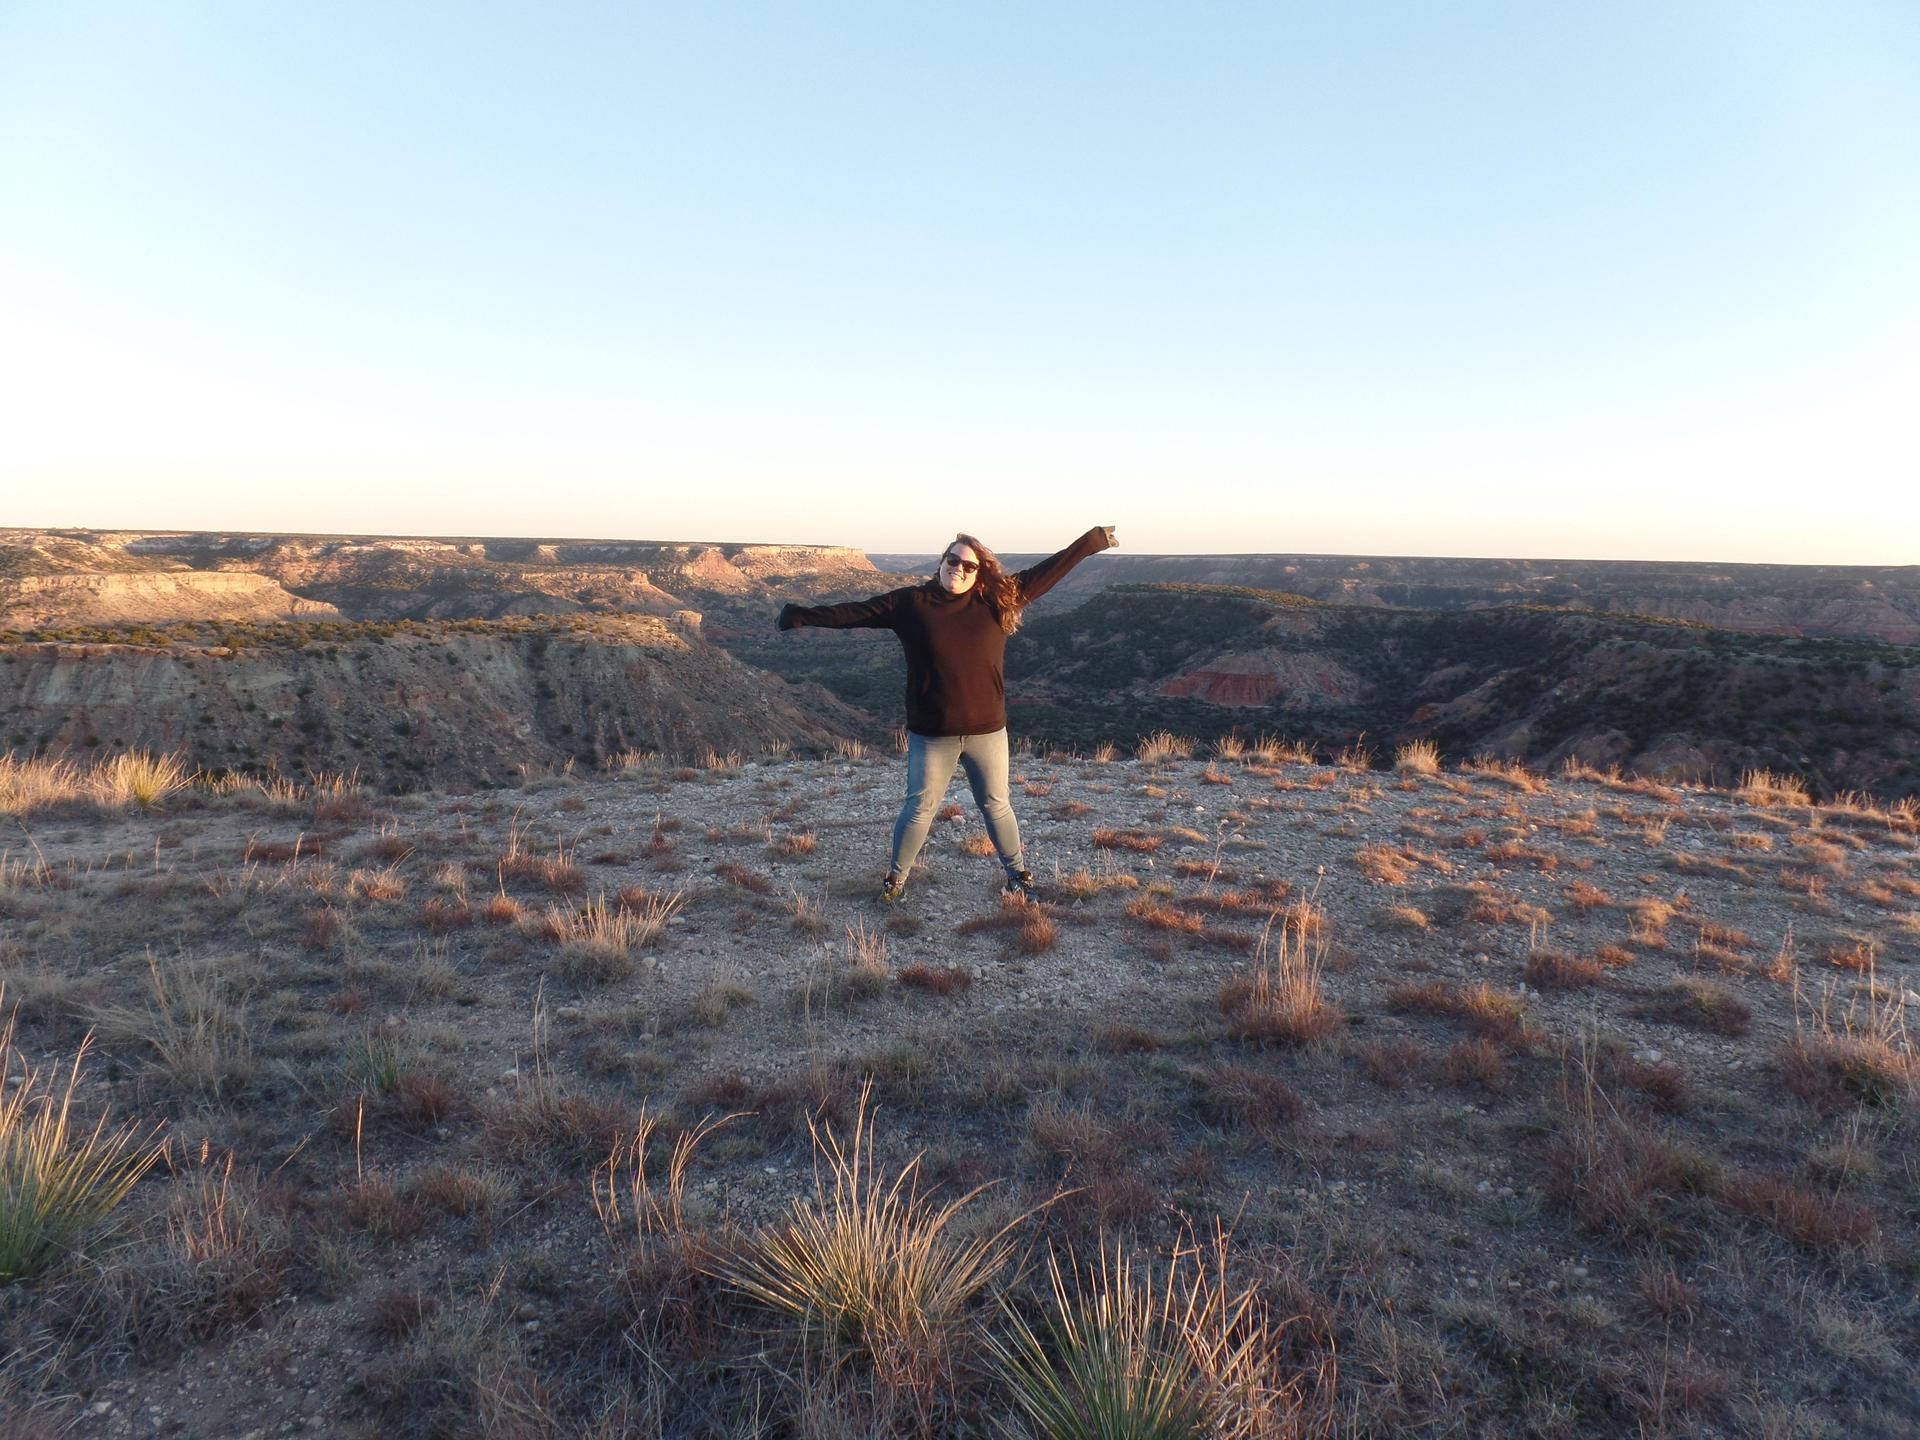 Mrs. Caballero standing in Palo Duro Canyon State Park.